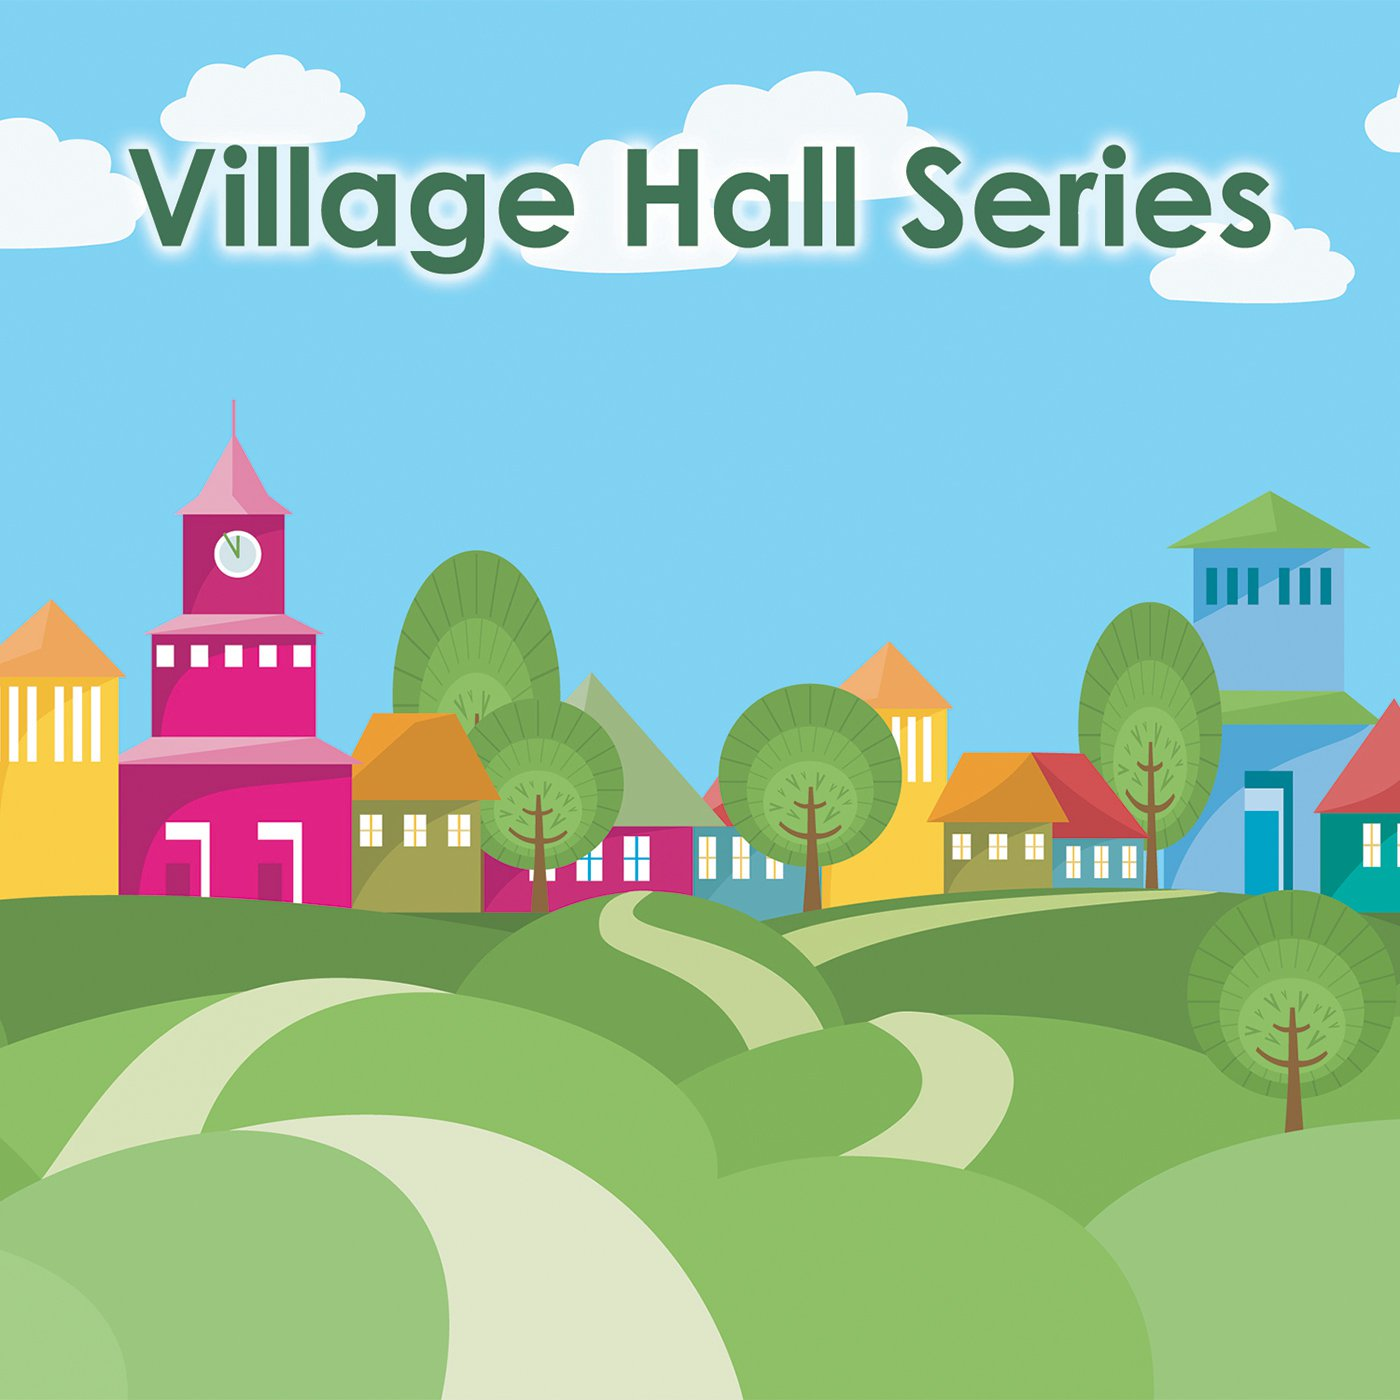 Village Hall Series